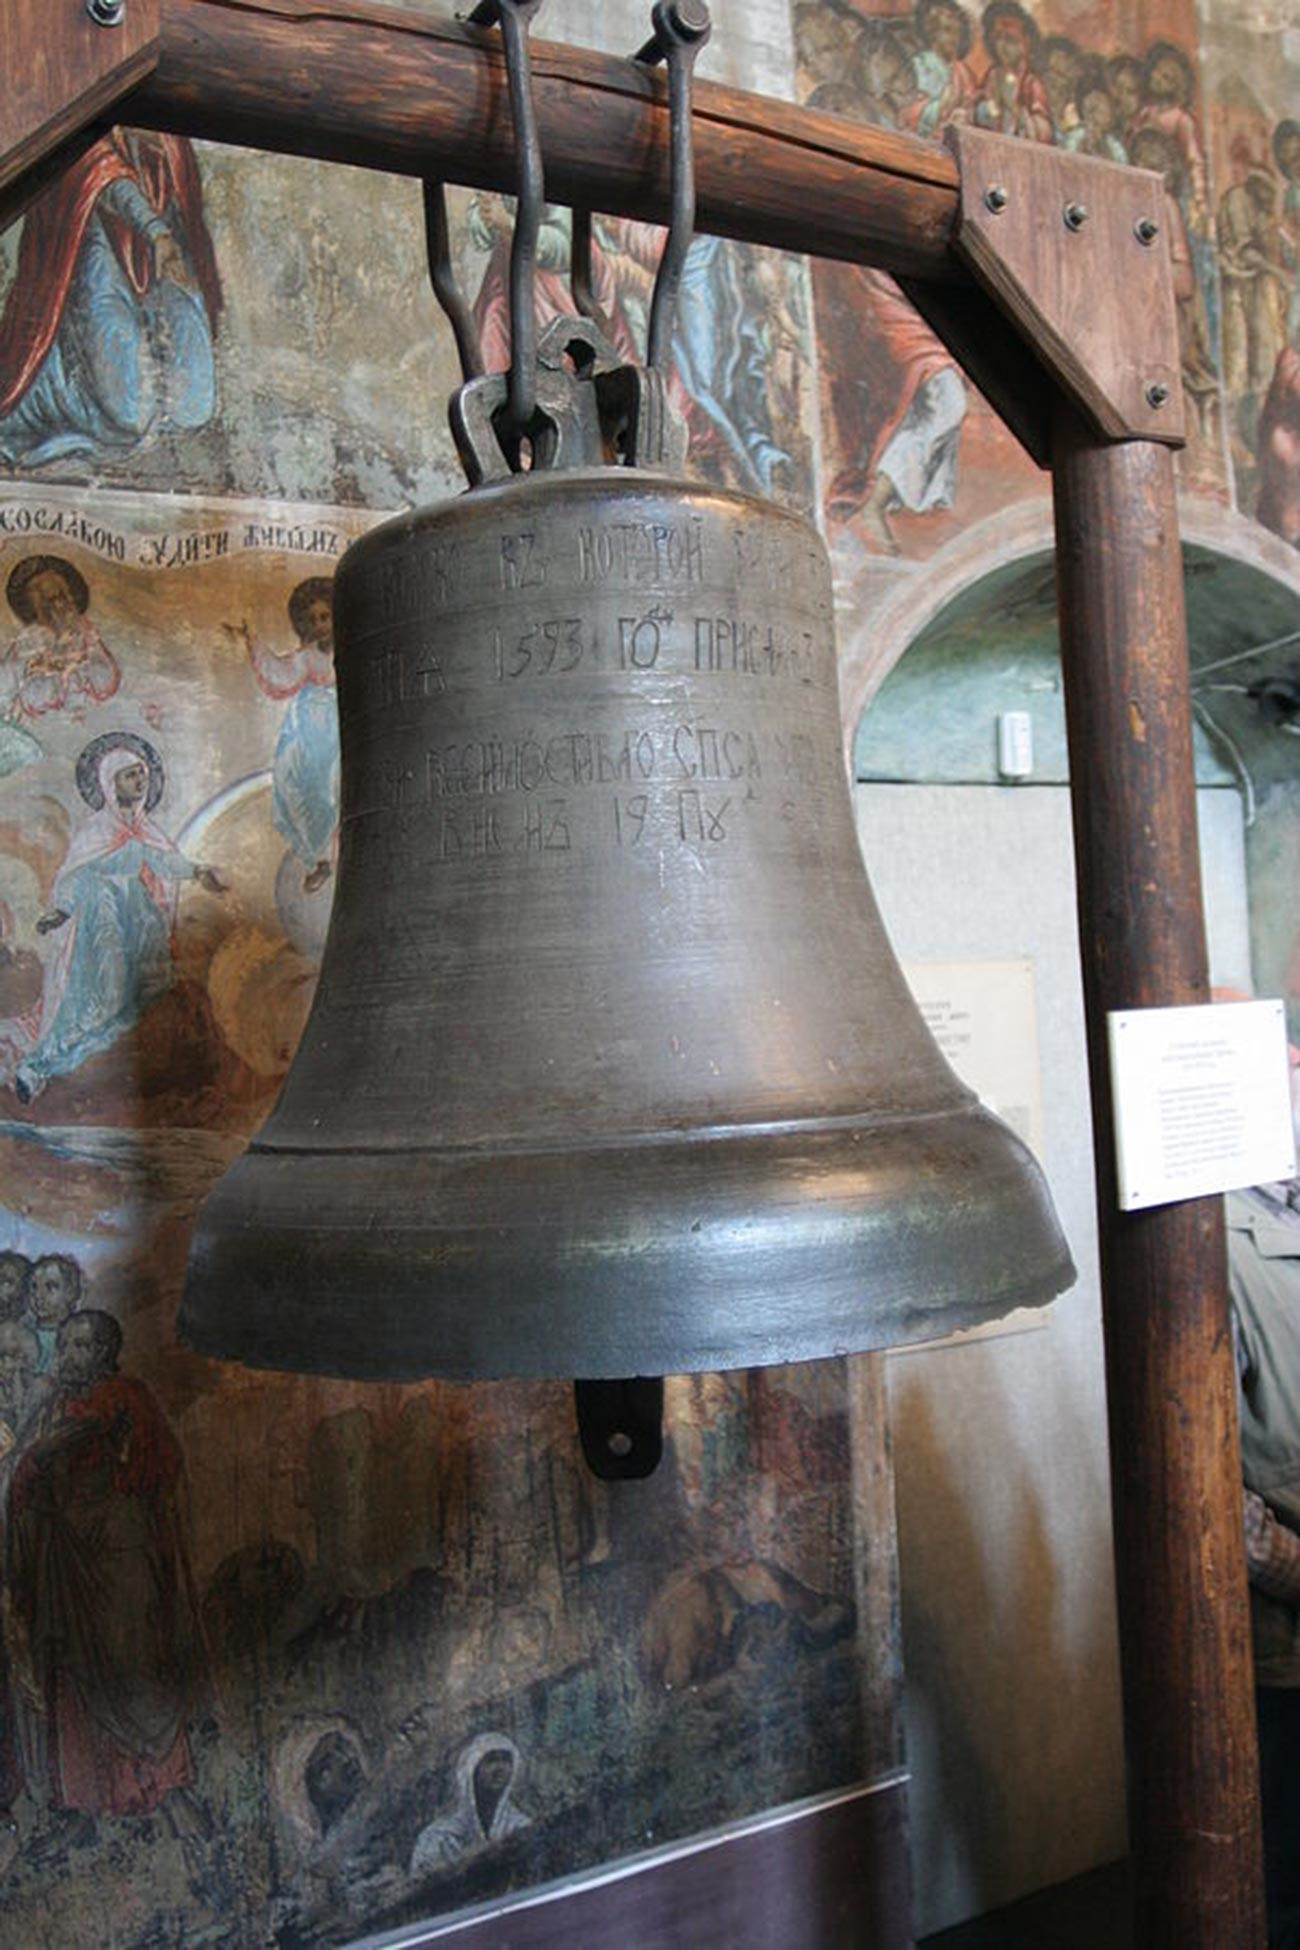 The tocsin bell that summoned the people of Uglich after Dmitry's death and was later exiled to Siberia.